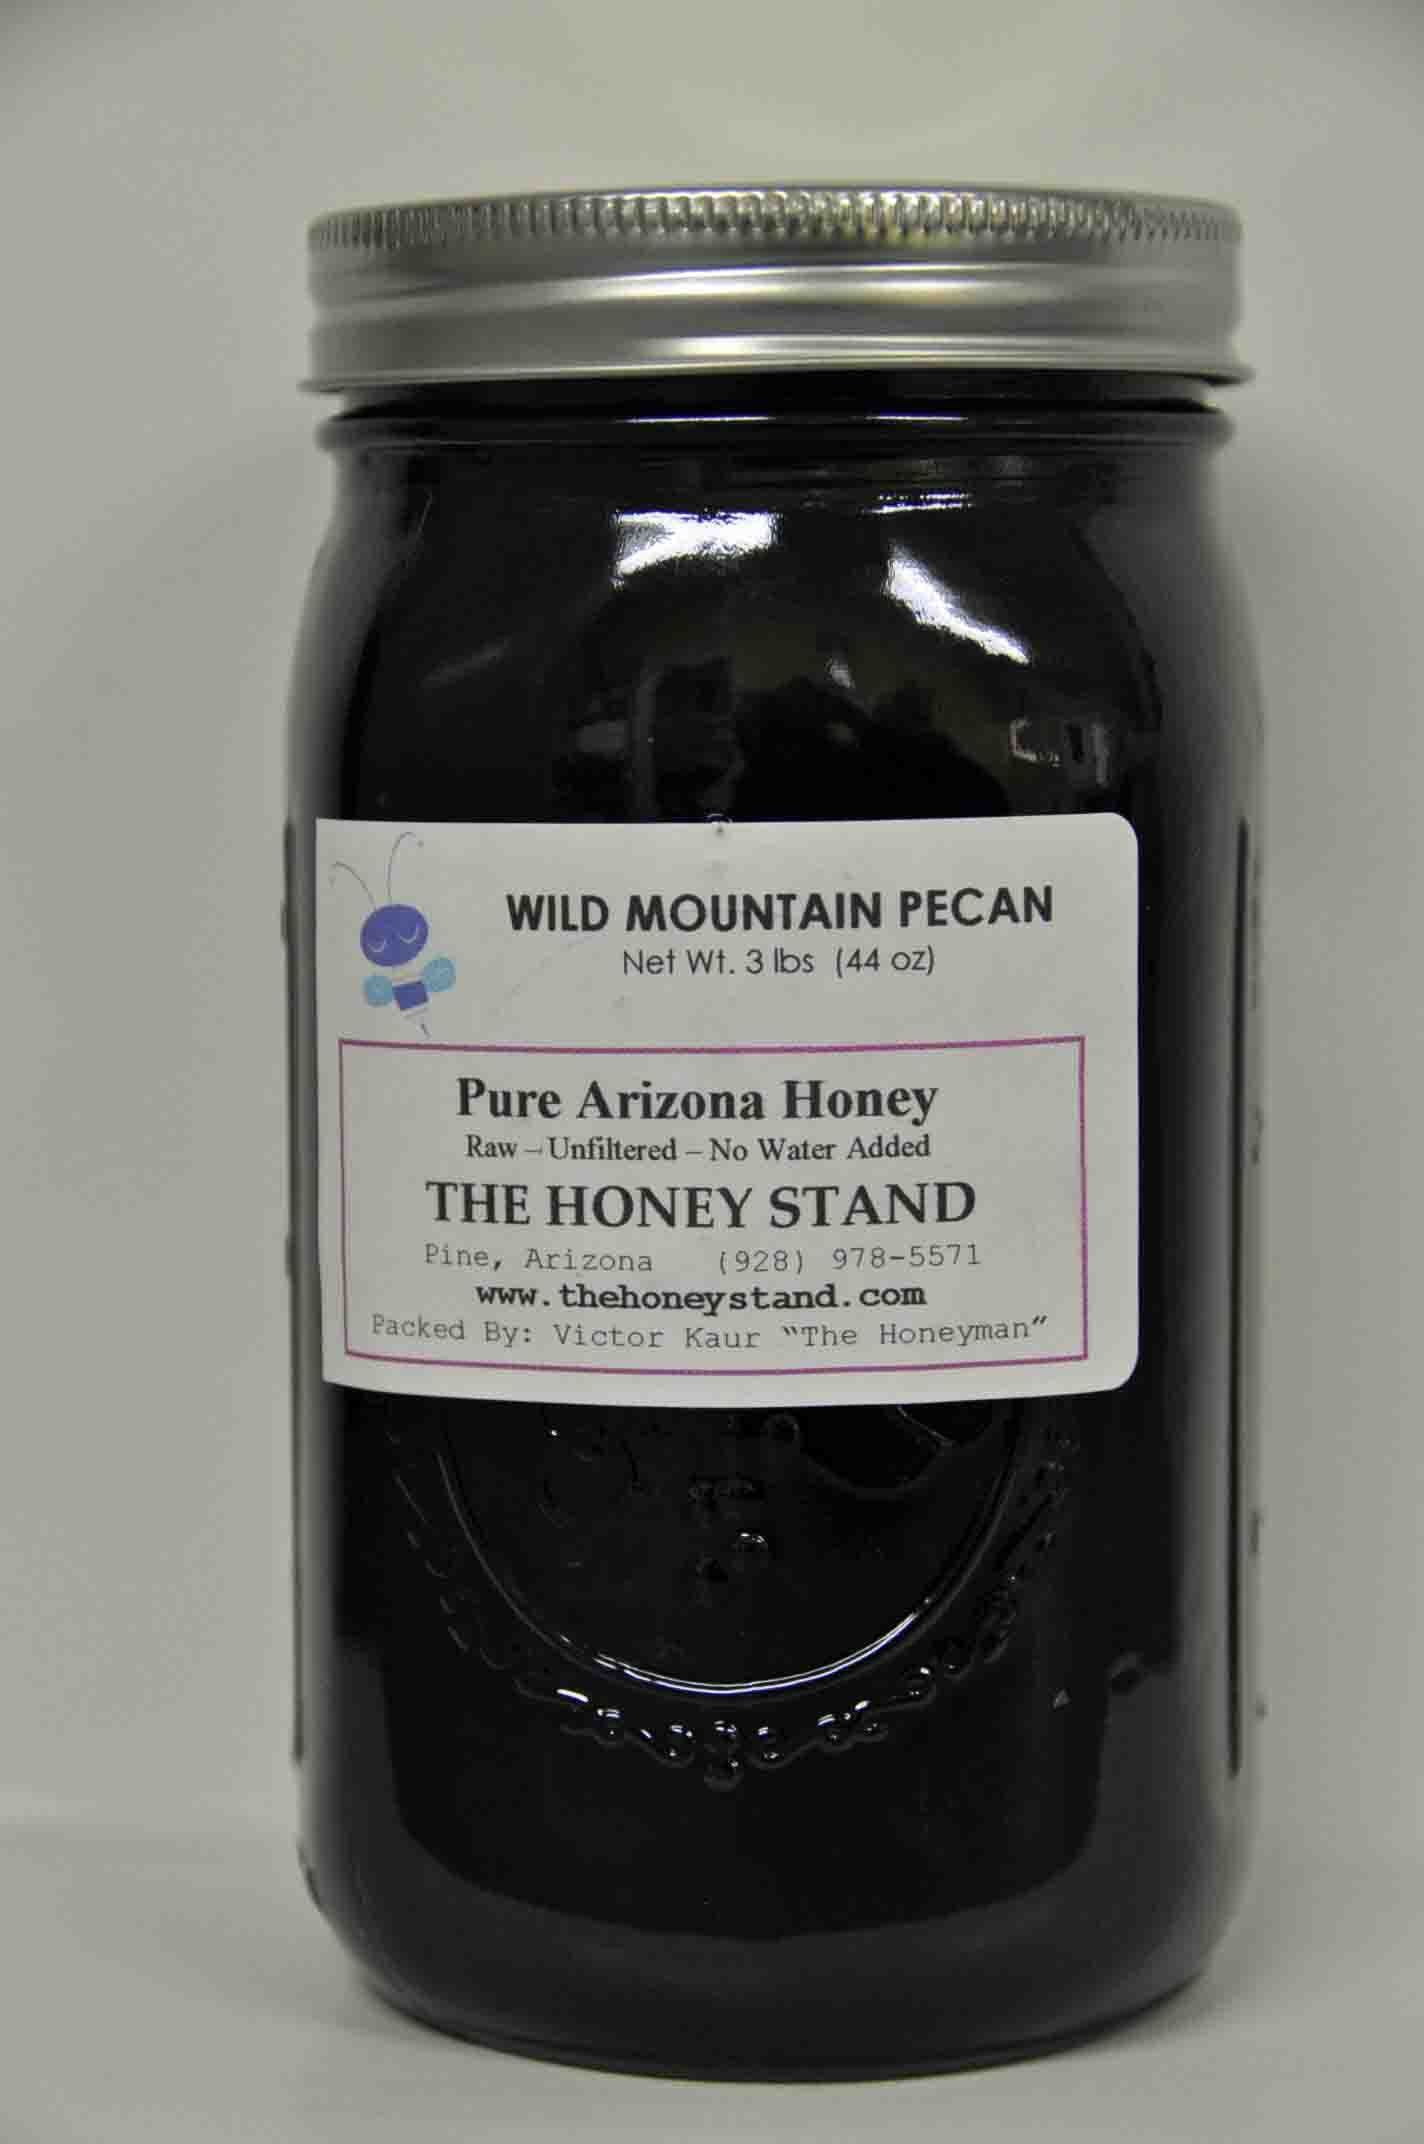 Wild Mountain Pecan Honey: 1 Quart Jar